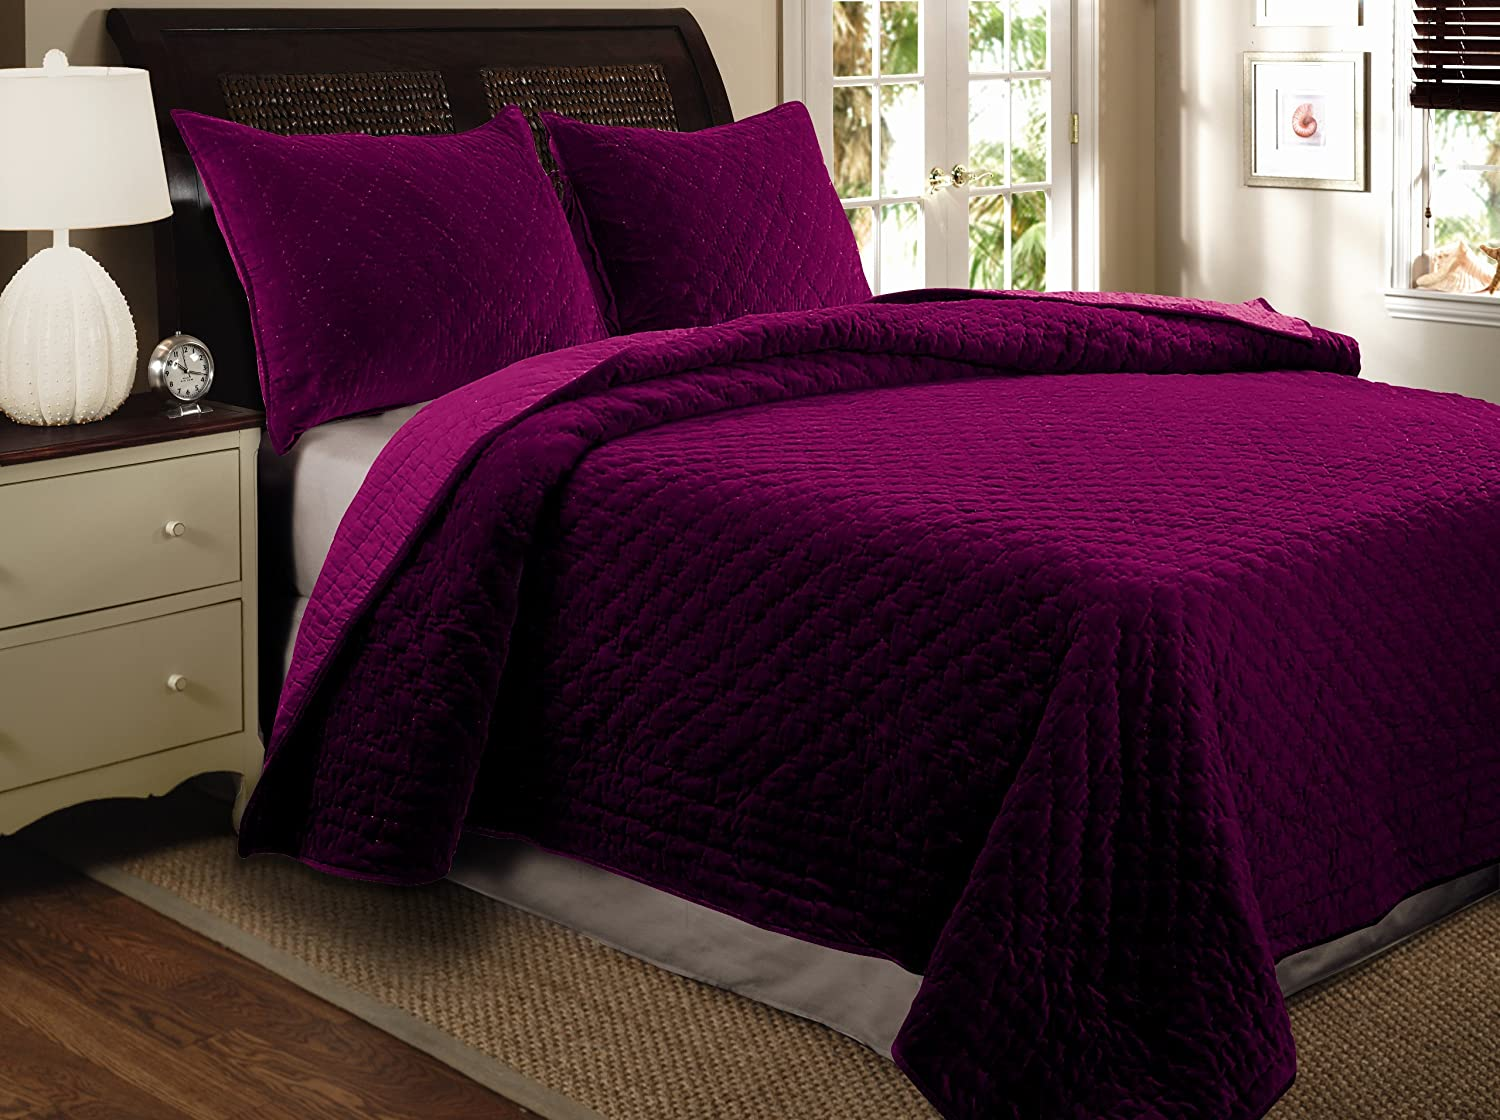 Greenland Home Barefoot Bungalow Palisades Pastel Bedspread Set, 3-Piece, Full (GL-1704LF)